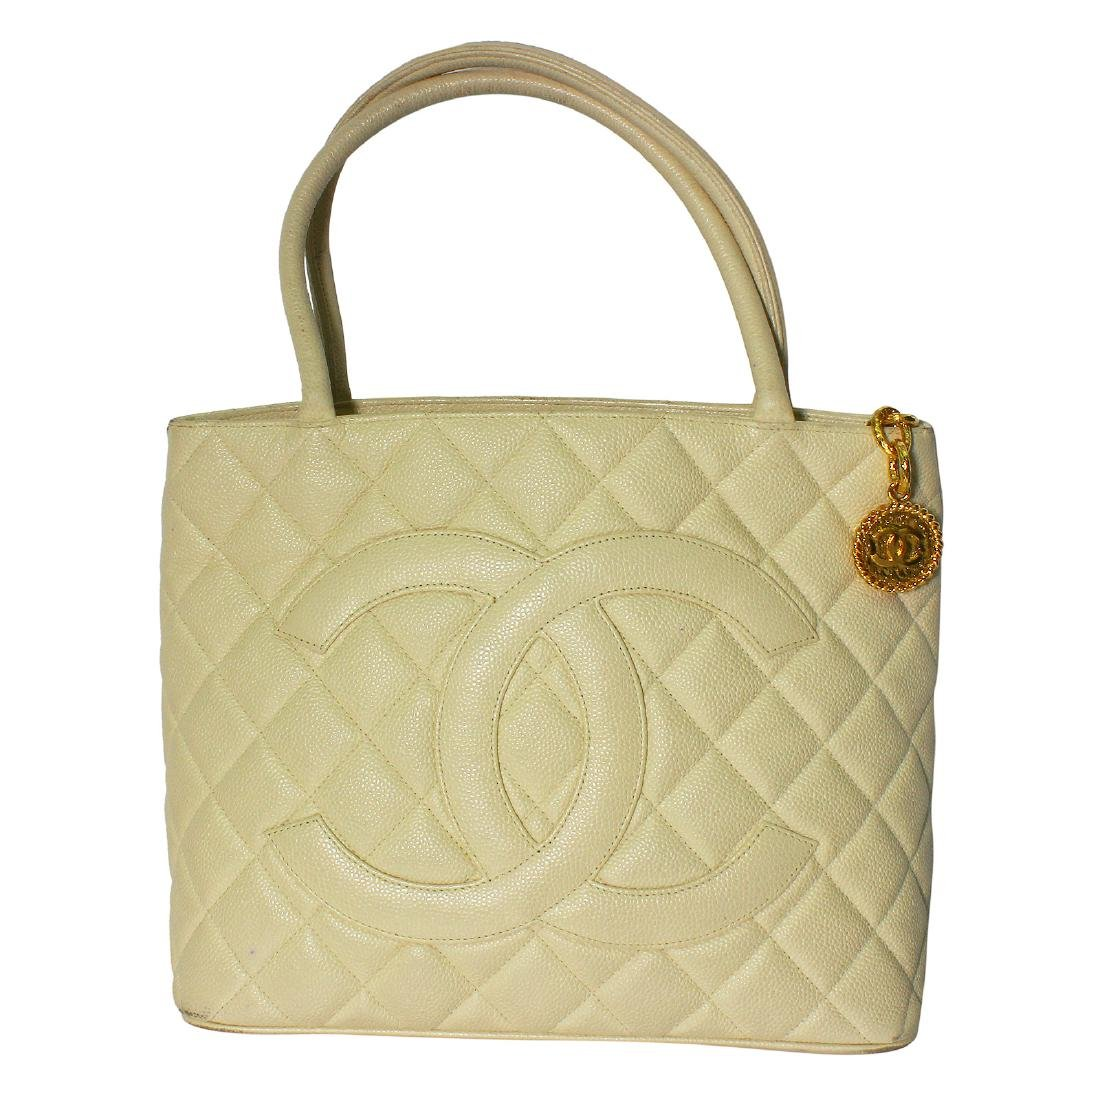 Chanel Quilted Beige Caviar Leather Shoulder Tote Bag